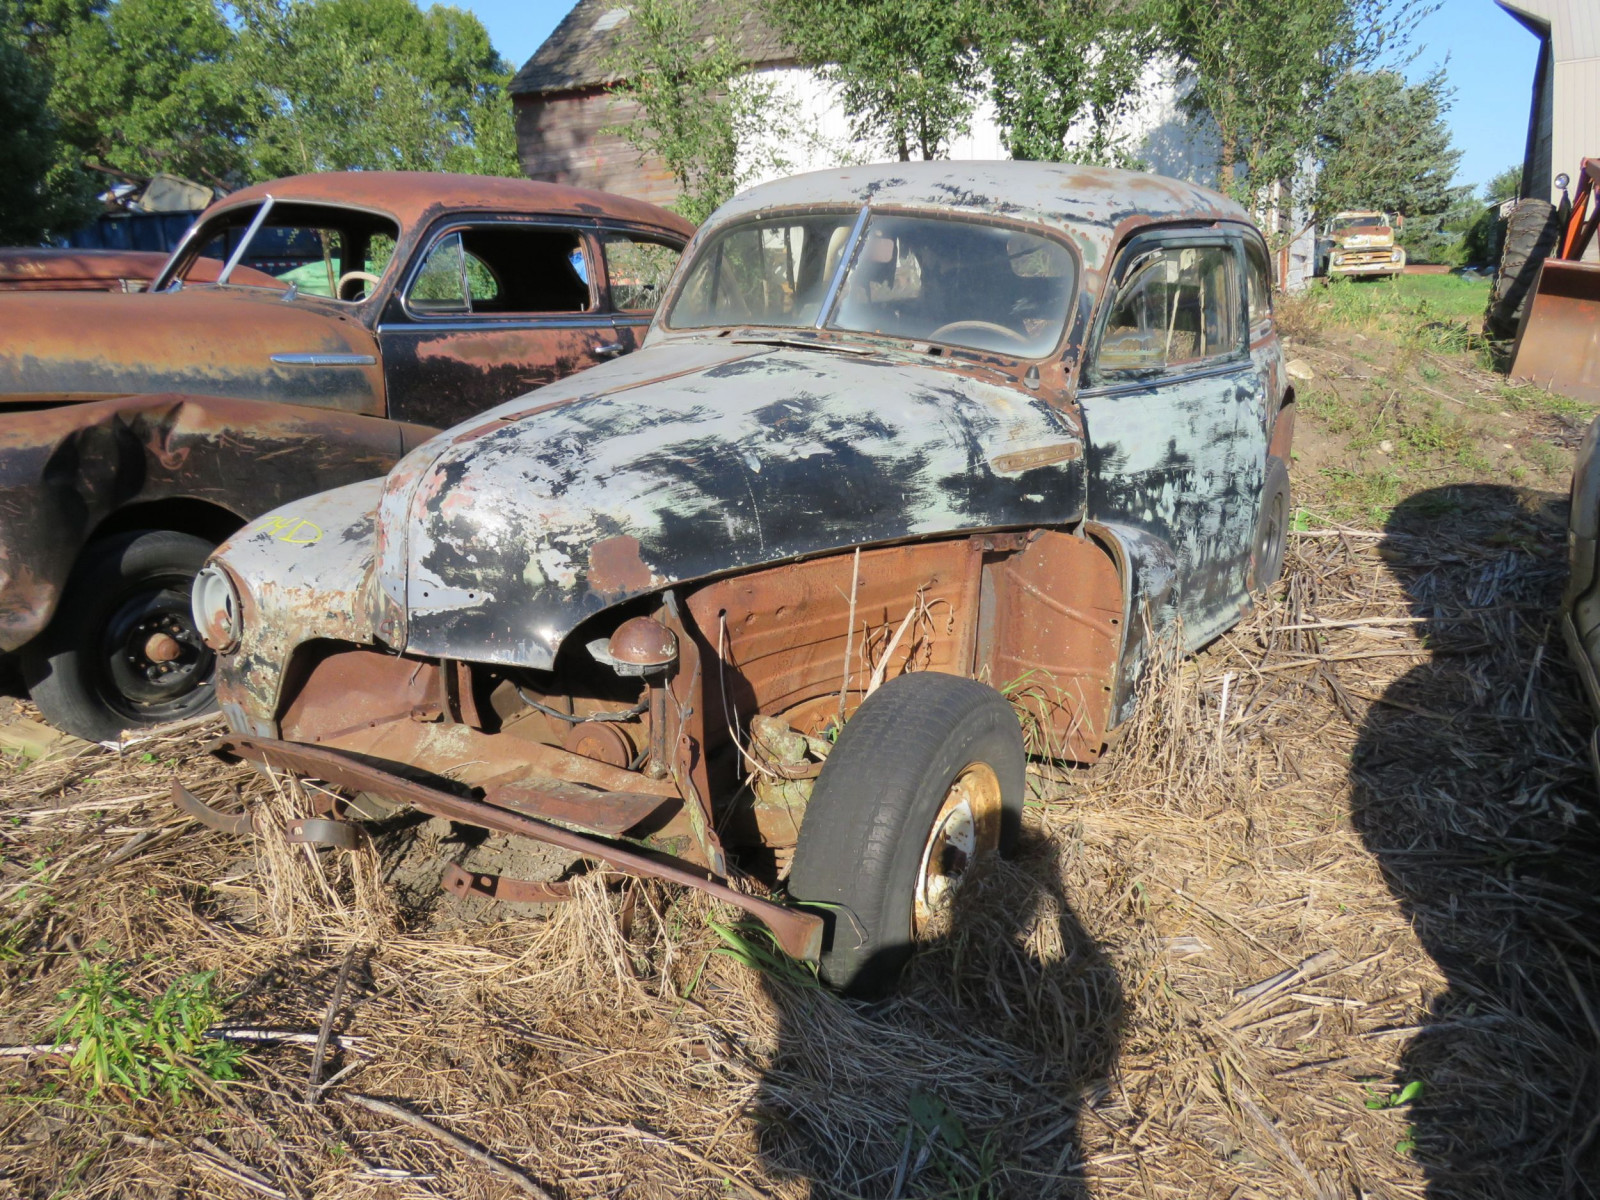 1946/7 Chevrolet for Project or Parts - Image 2